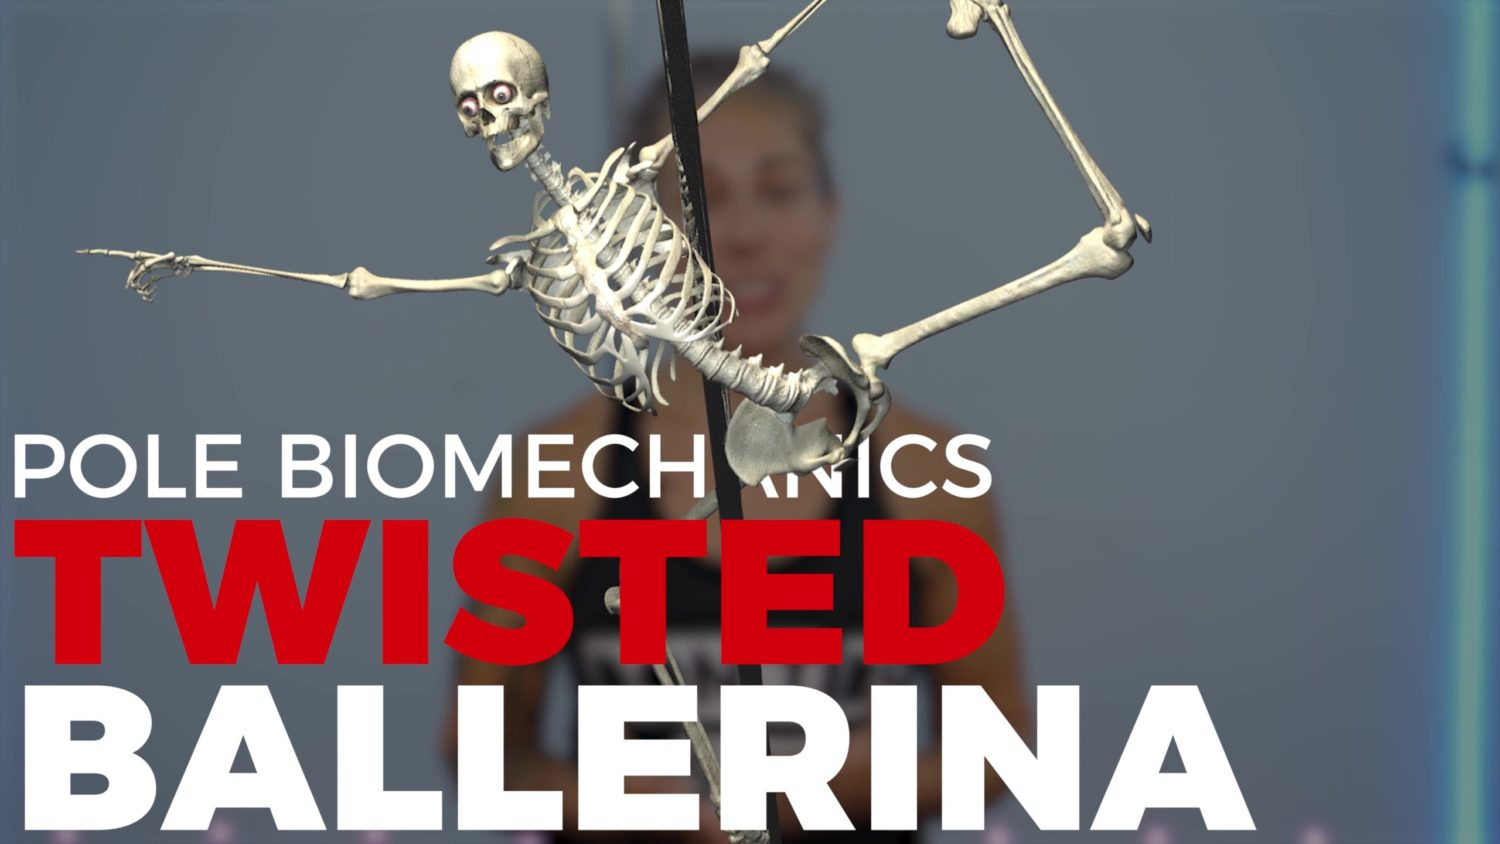 Pole biomechanics – lessons from the twisted ballerina